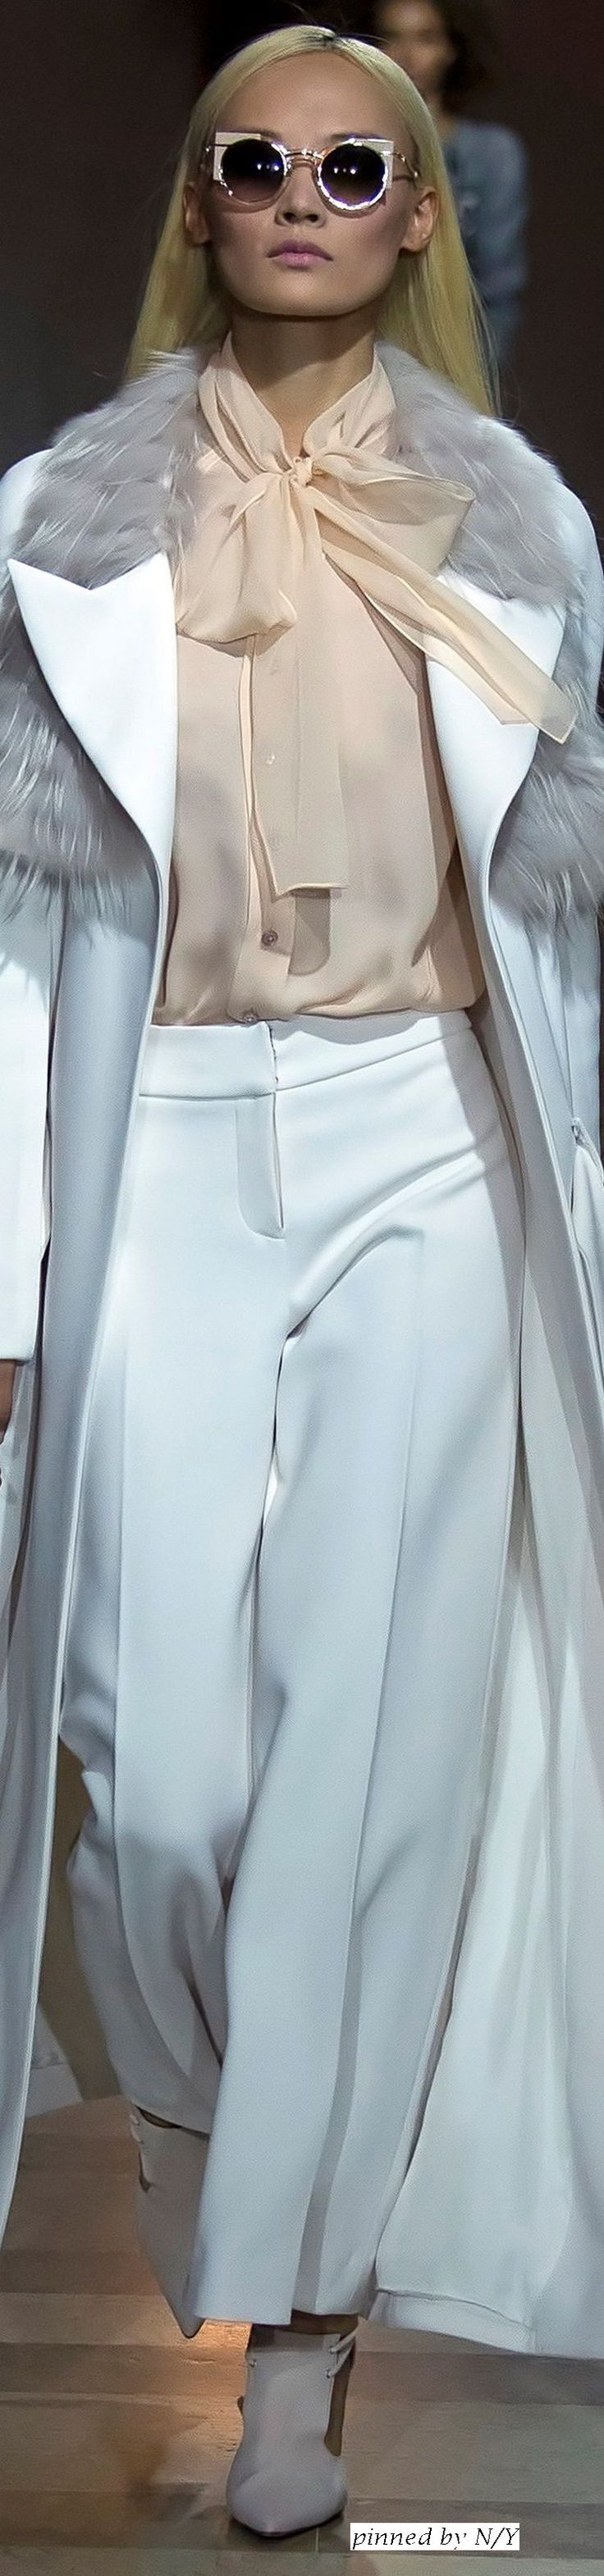 Carolina Herrera - Fall Winter 2016/2017